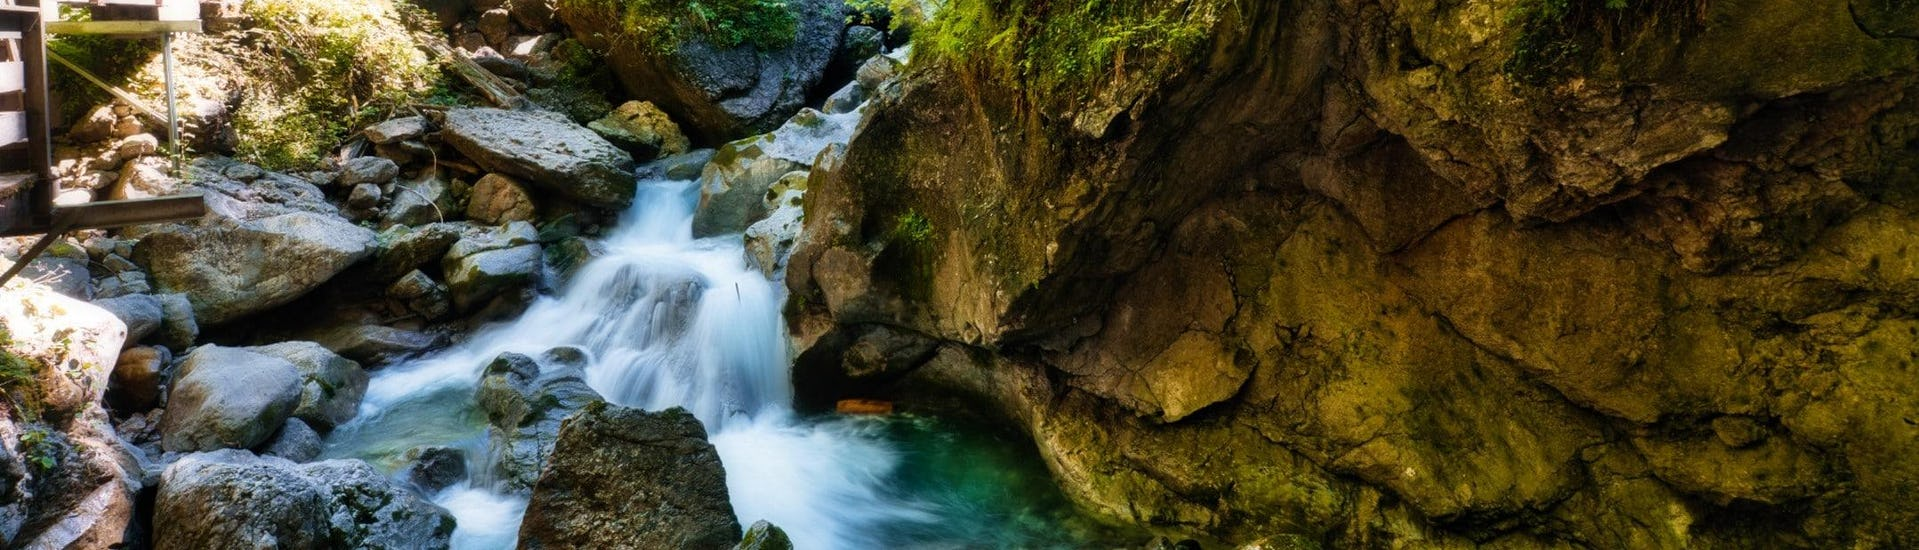 An image of the Seisenbergklamm, a popular destination to go canyoning in Salzburg.